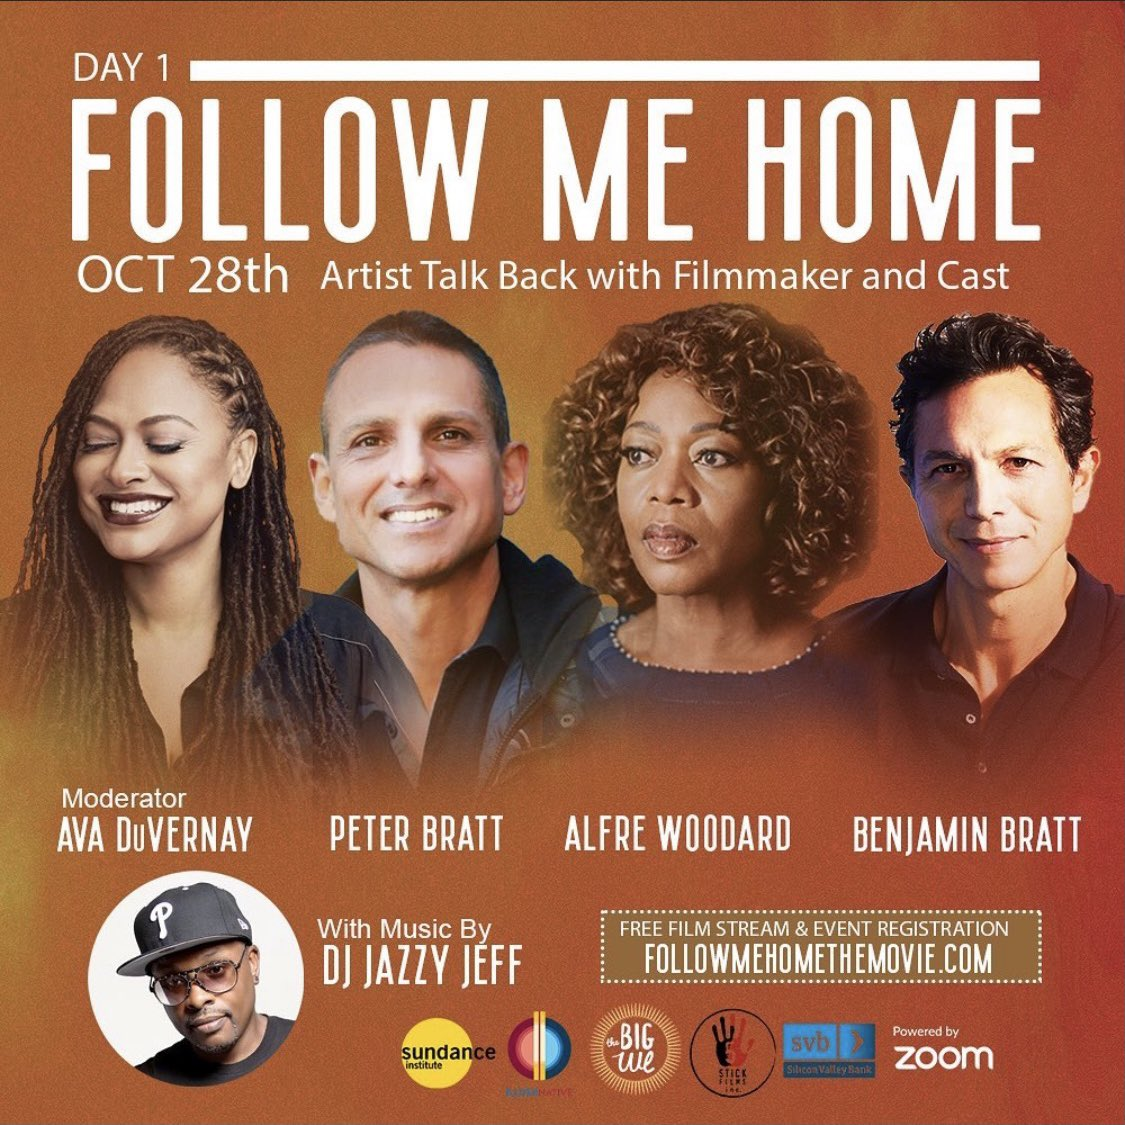 TODAY! Join me, #BenjaminBratt, Peter Bratt with special guest Filmmaker and Activist @ava as we discuss #FollowMeHome and how incredibly relevant it is to our world today. Take a ride with us! RSVP Here: followmehomethemovie.com/events